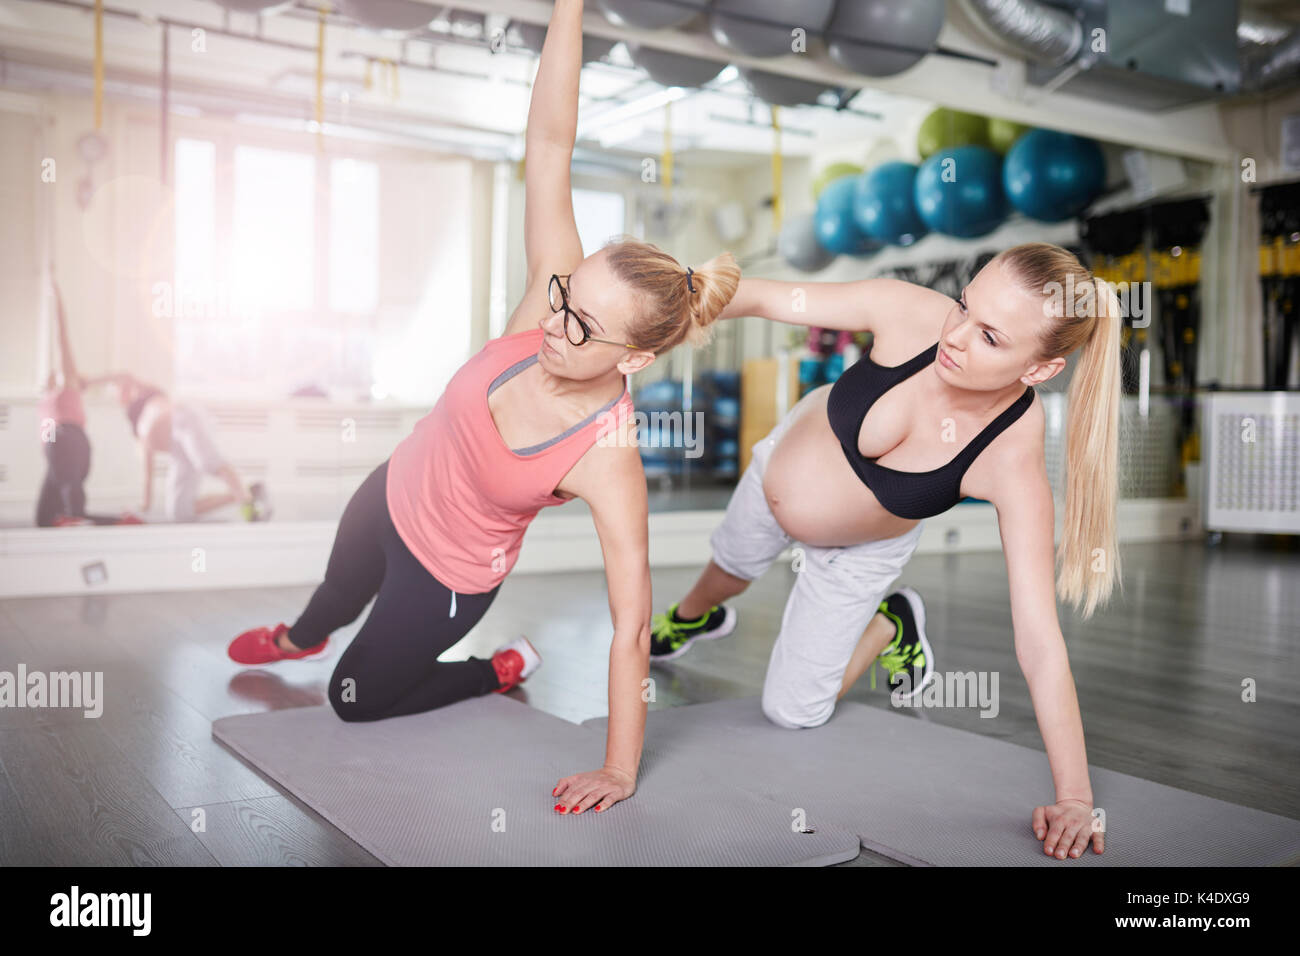 Side portrait of pregnant woman exercising with personal trainer Stock Photo